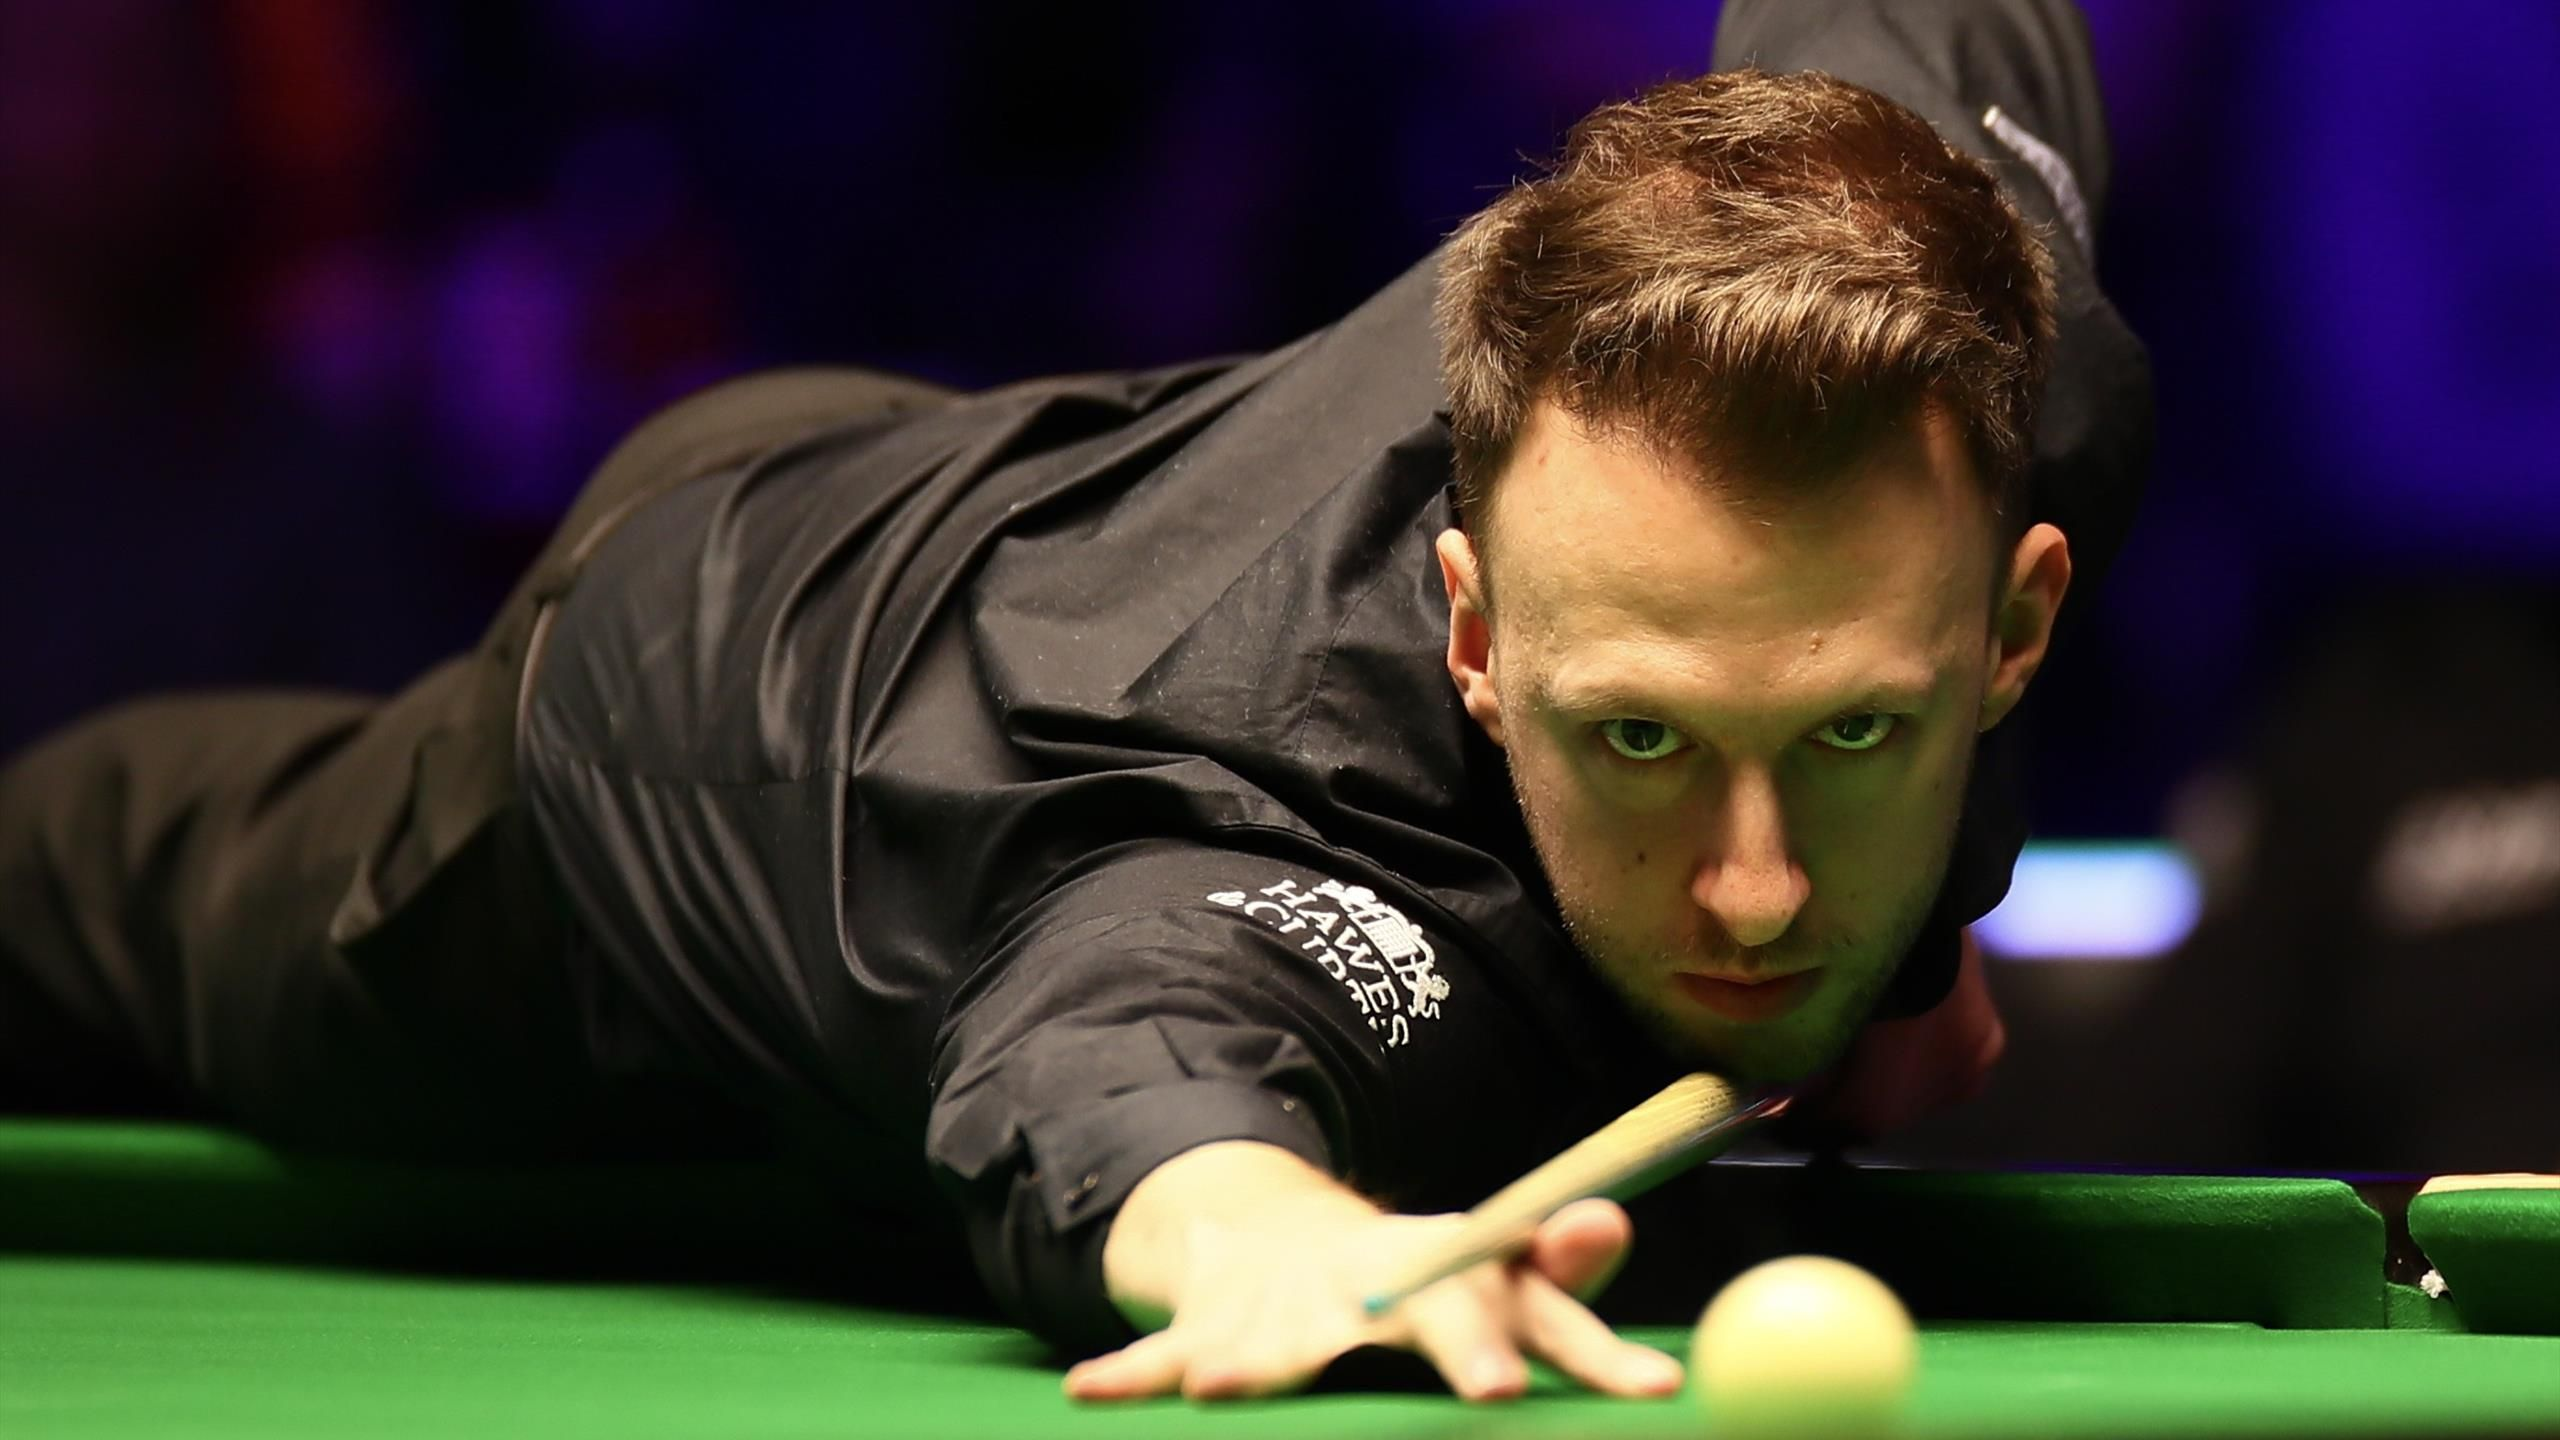 Northern Ireland Open Snooker 2020 Live Judd Trump Beats Ronnie O Sullivan In The Final Again Eurosport